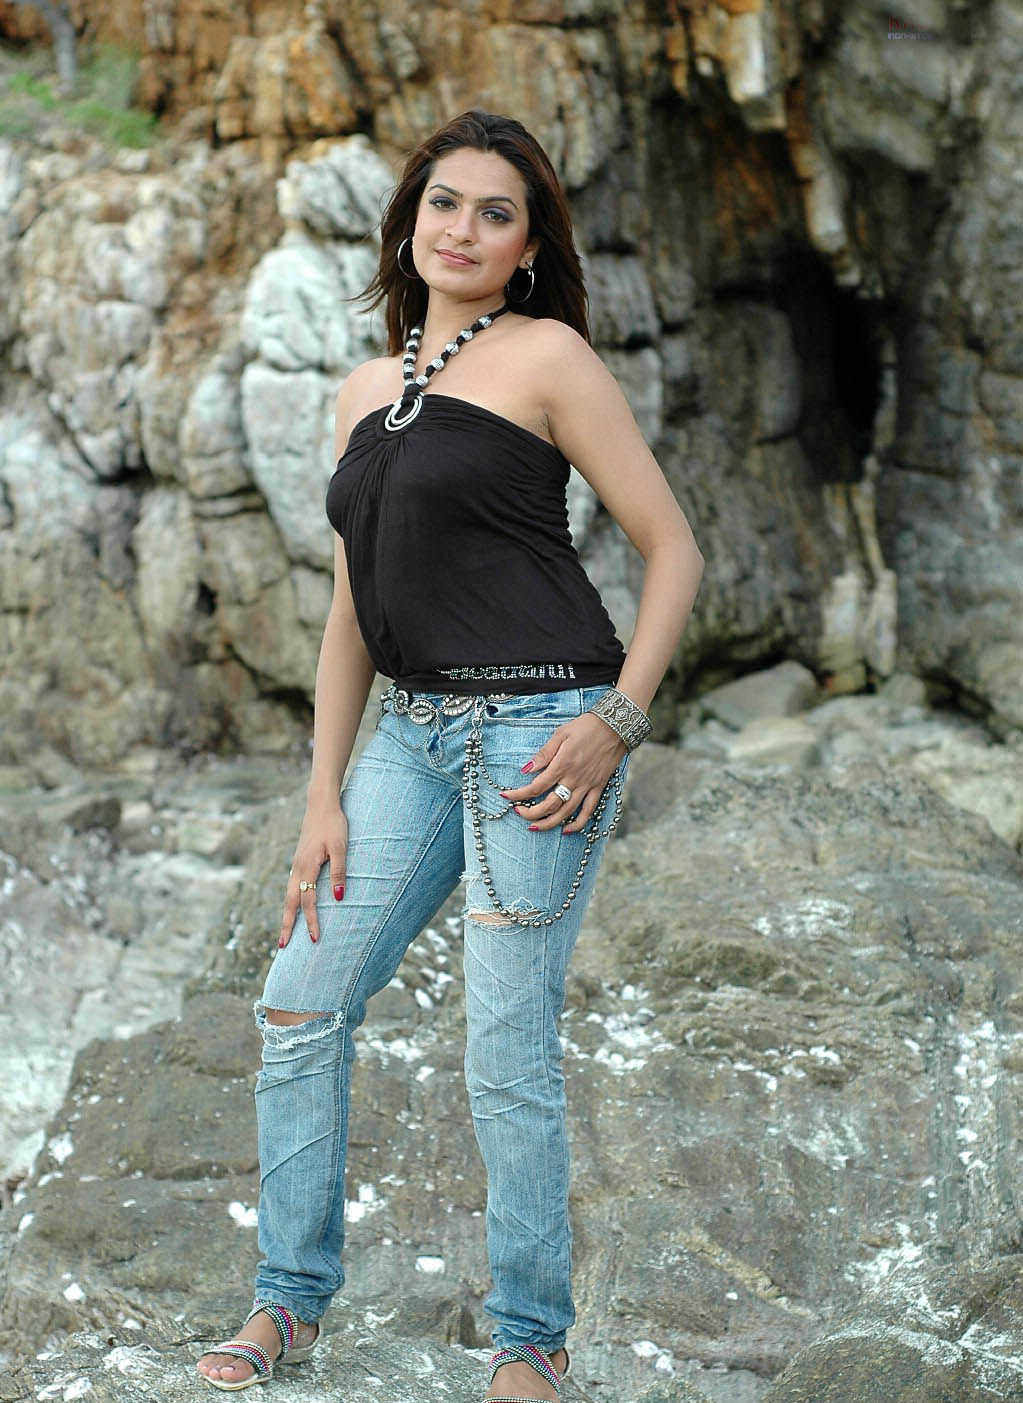 jeans photo hot girls Pakistani